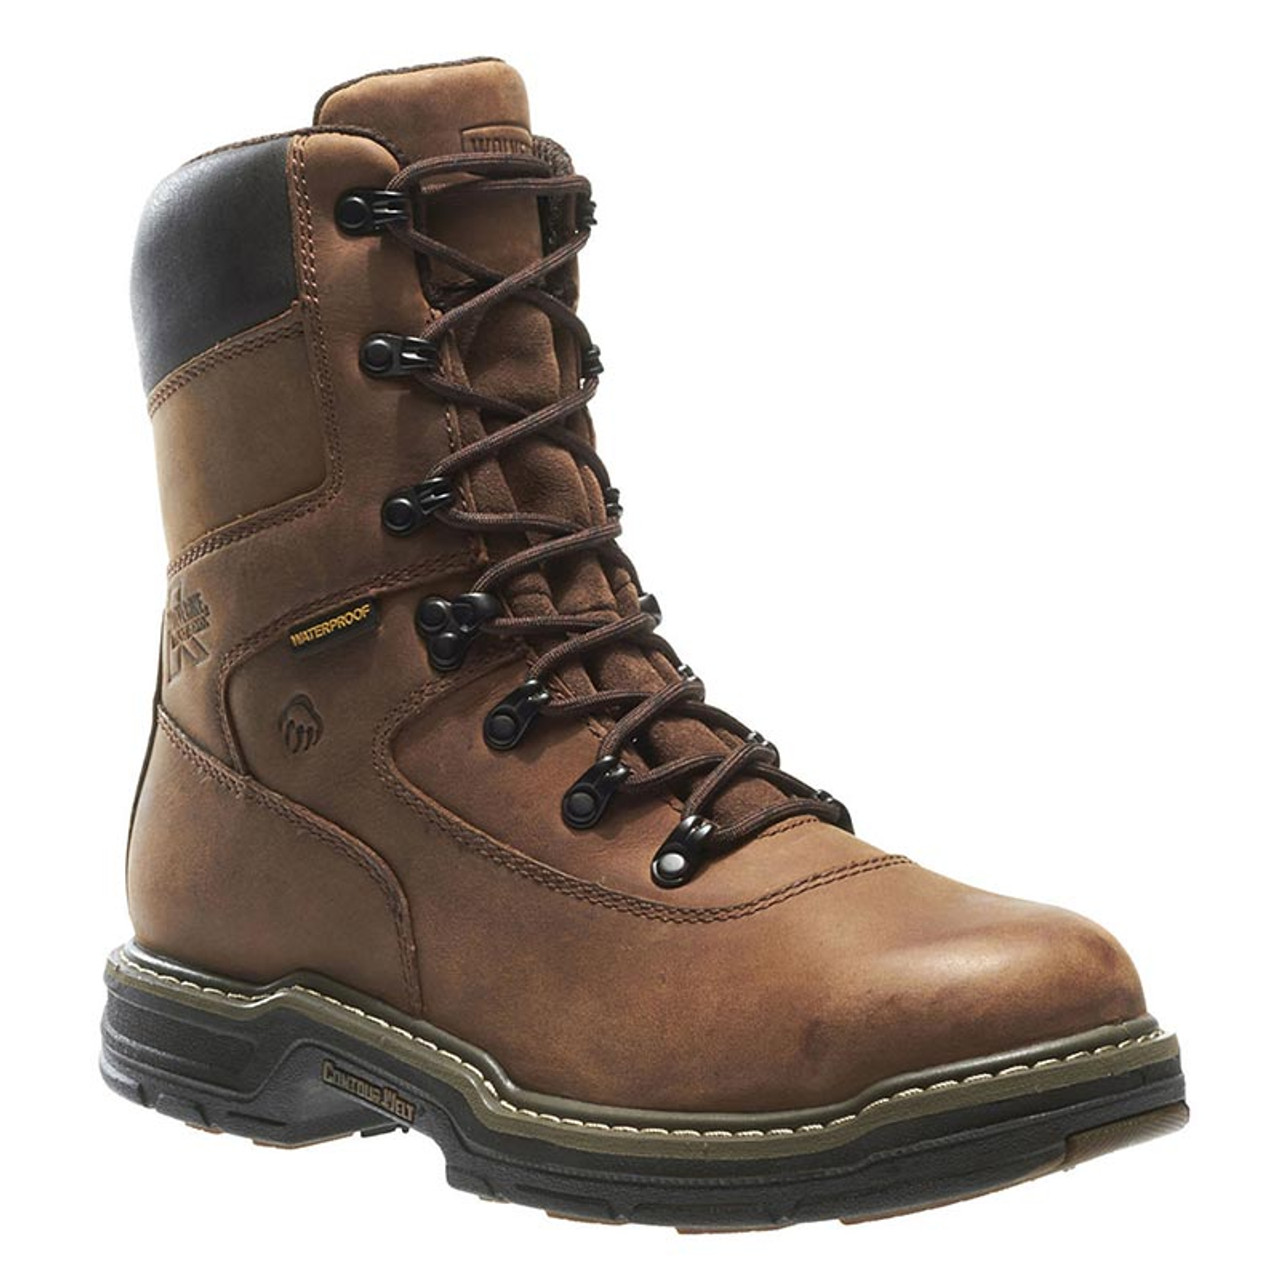 3e6233d3577 Wolverine W02163 MARAUDER MULTISHOX Steel Toe 400g Insulated 8